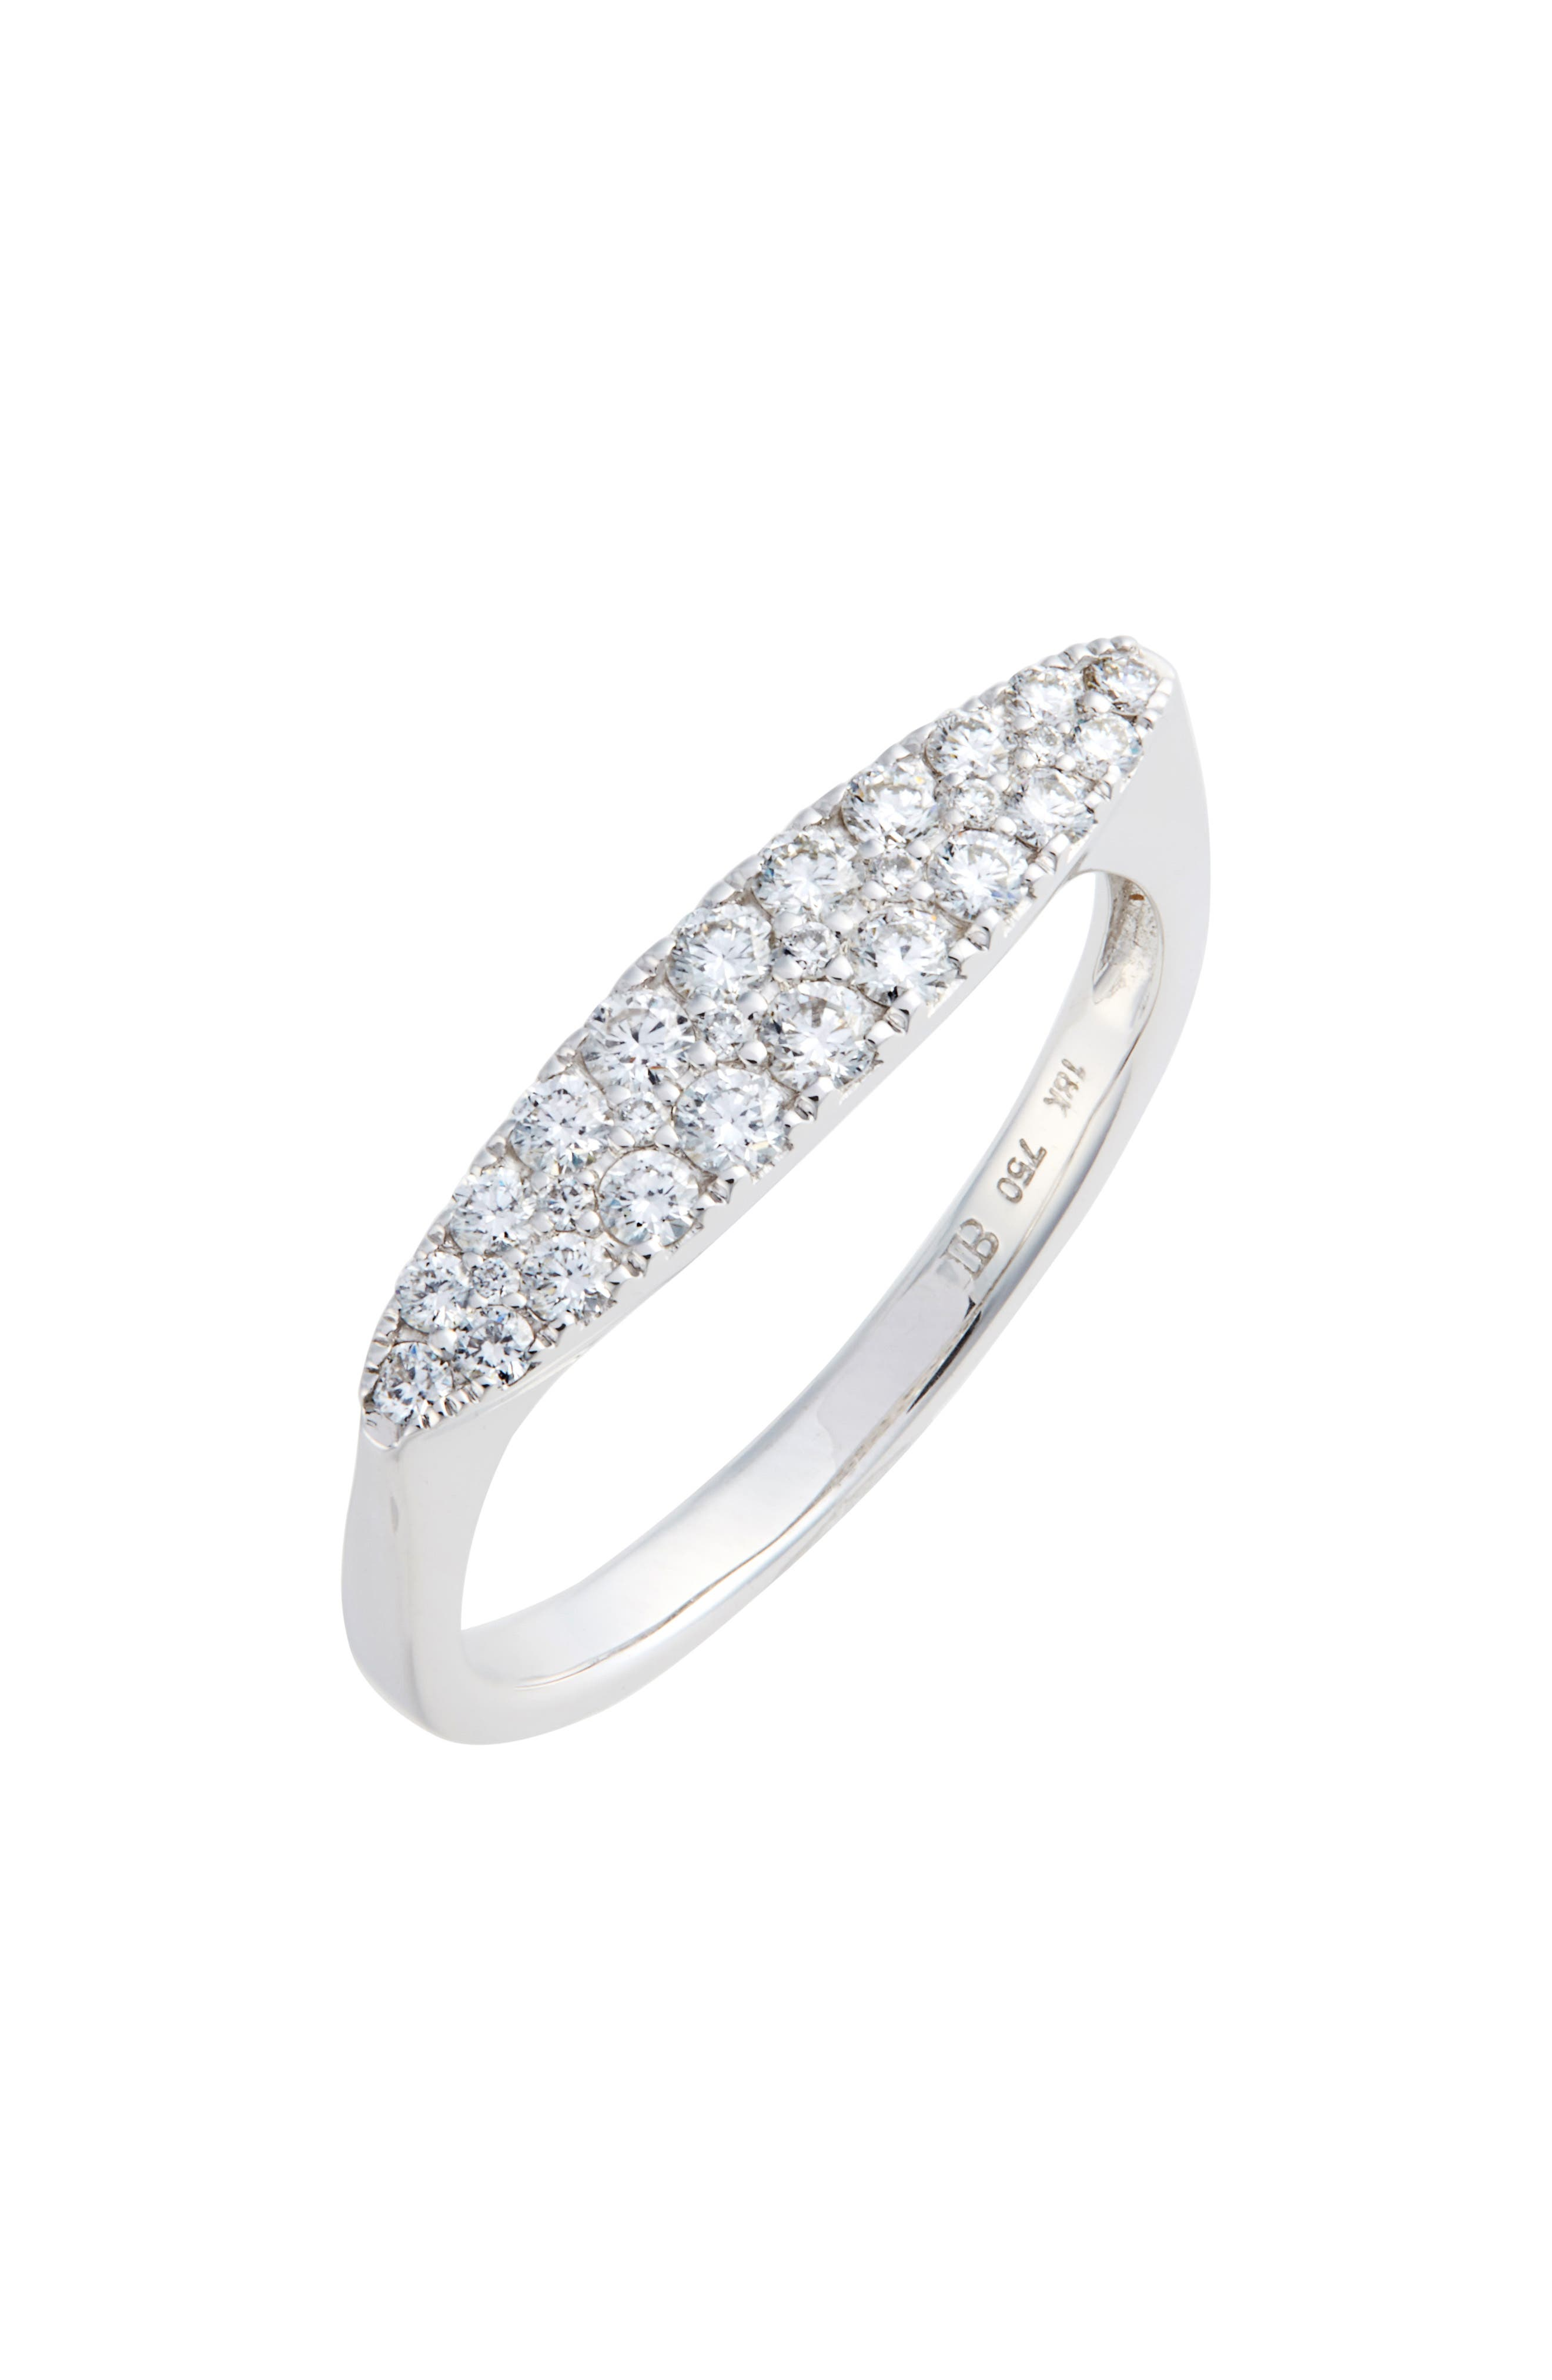 Oval Diamond Stacking Ring,                         Main,                         color, WHITE GOLD/ DIAMOND